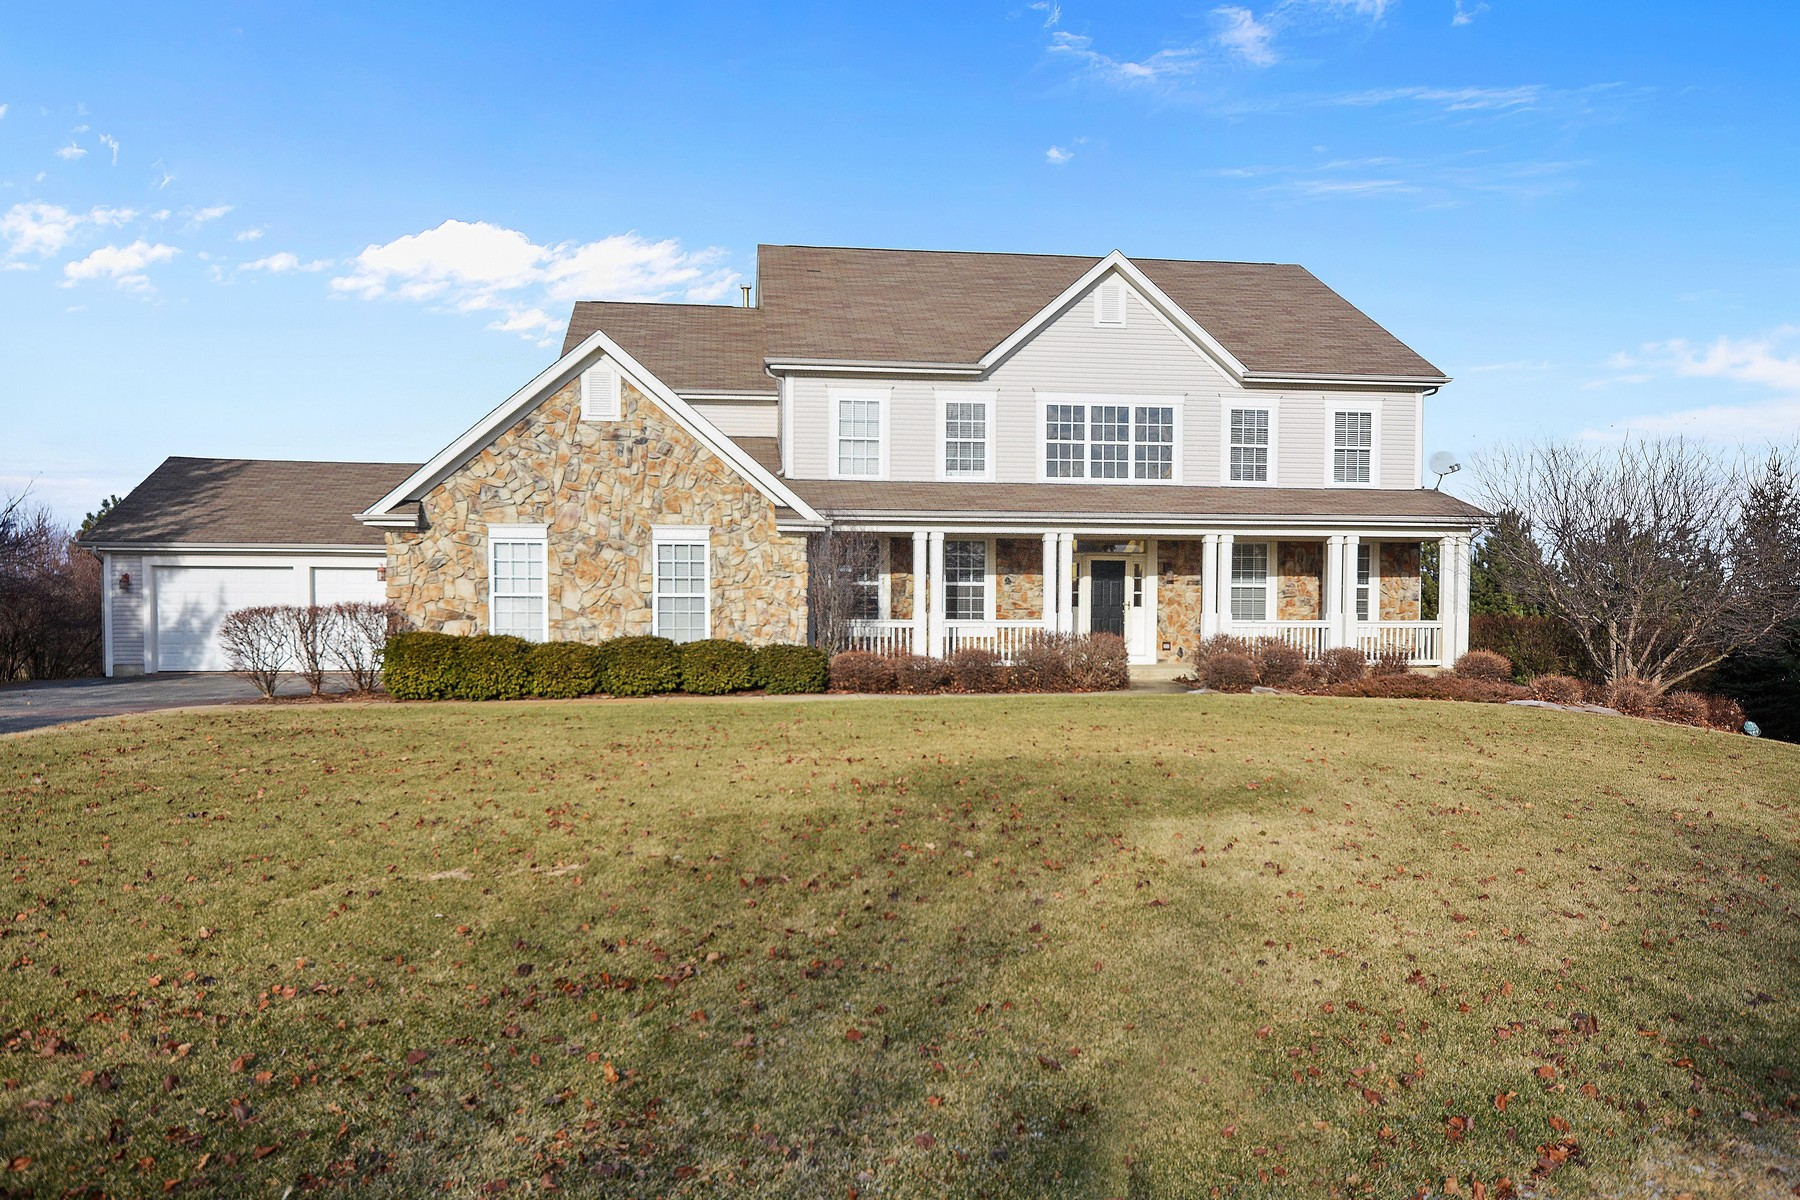 Single Family Home for Sale at Fabulous Home on over an Acre 37W130 Baker Hill Court St. Charles, Illinois, 60175 United States